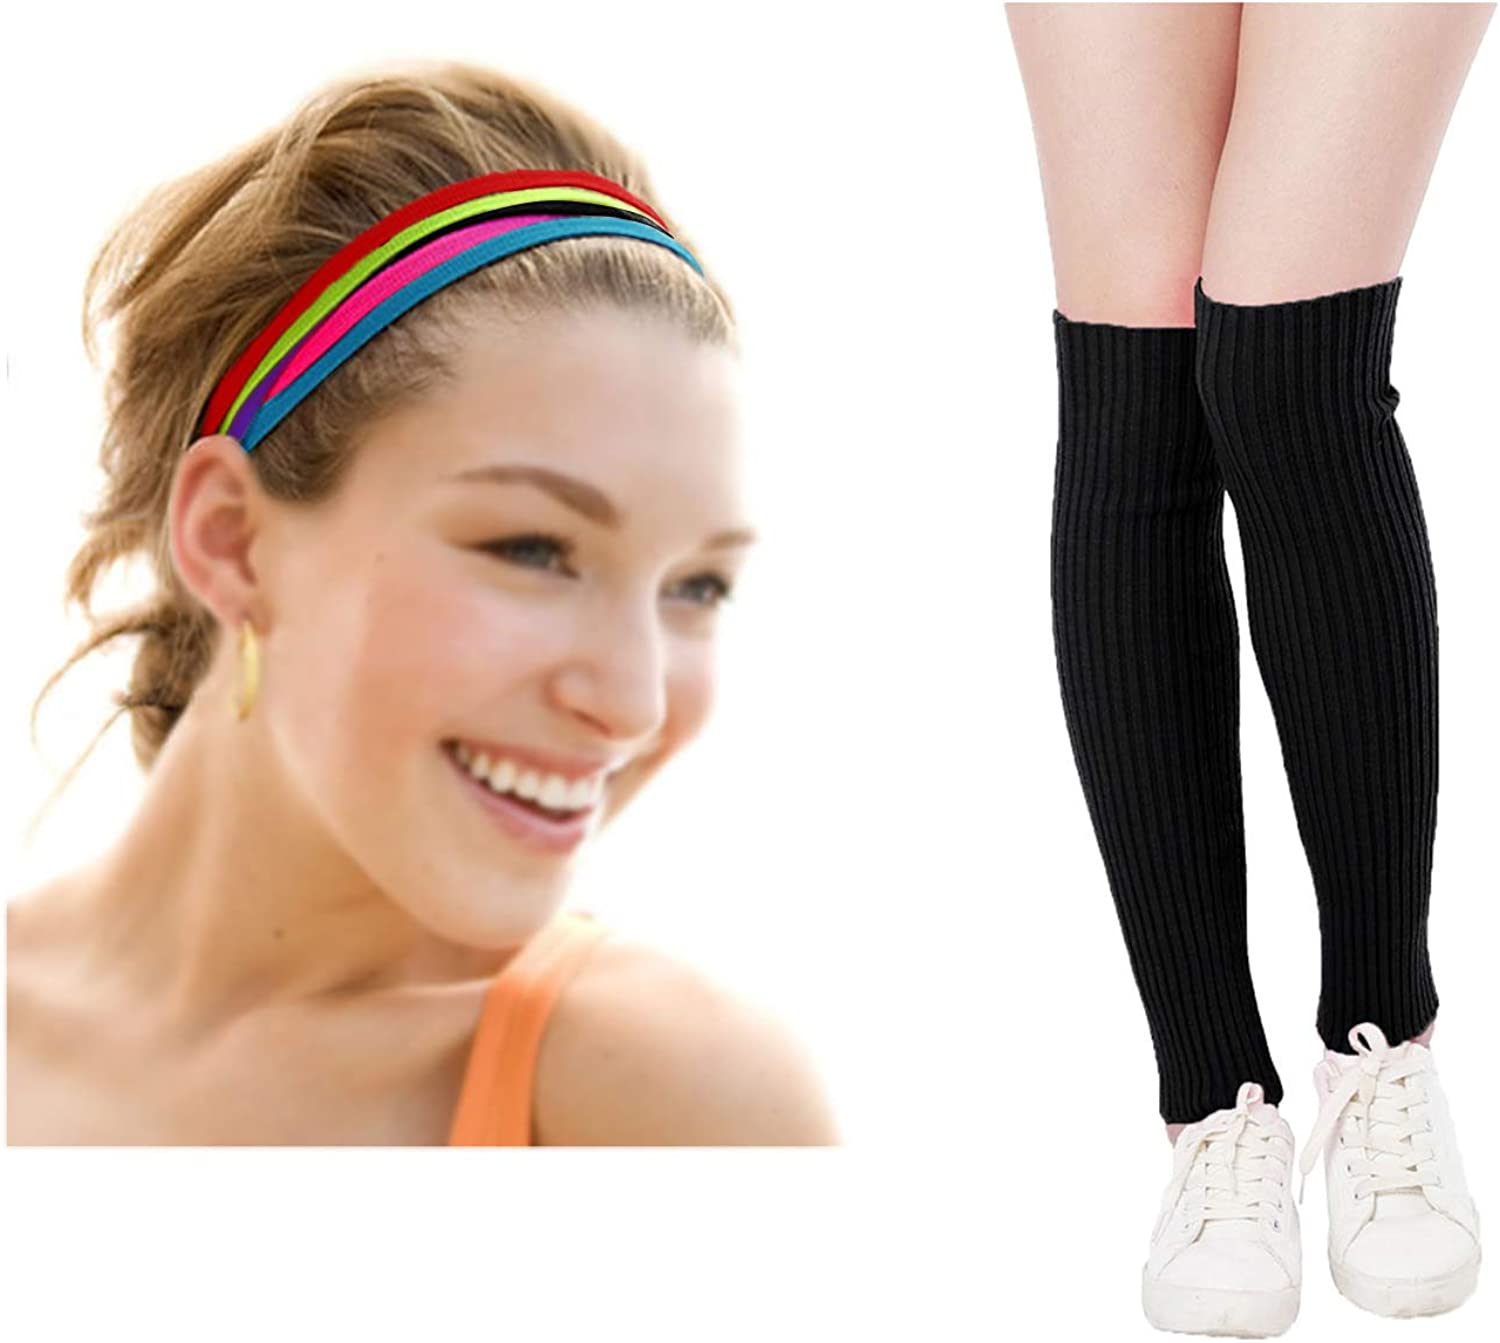 Kimberly's Knit Women's Cute Colorful Hair band Rope Ties and 80s Leg Warmers for Party